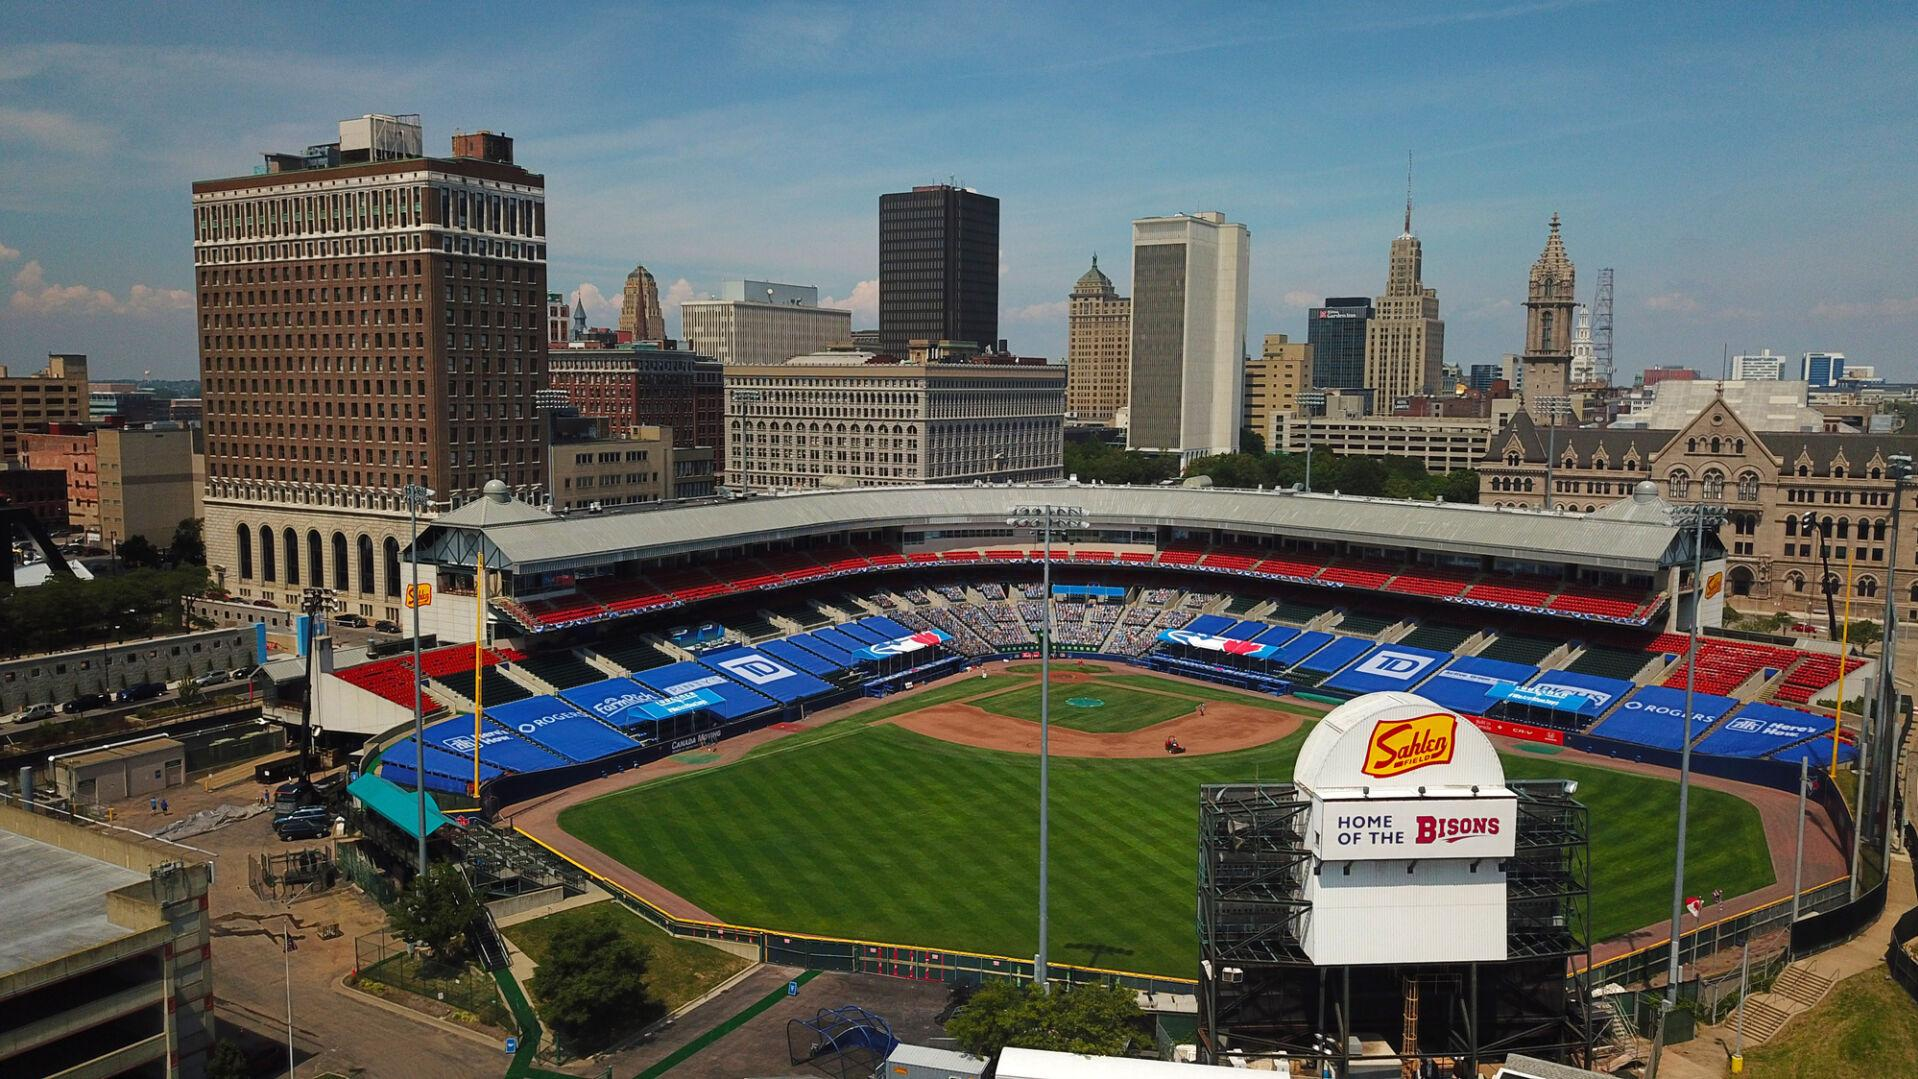 Fs1 Mlb Network Announcers Won T Get To Experience Sahlen Field Television Buffalonews Com